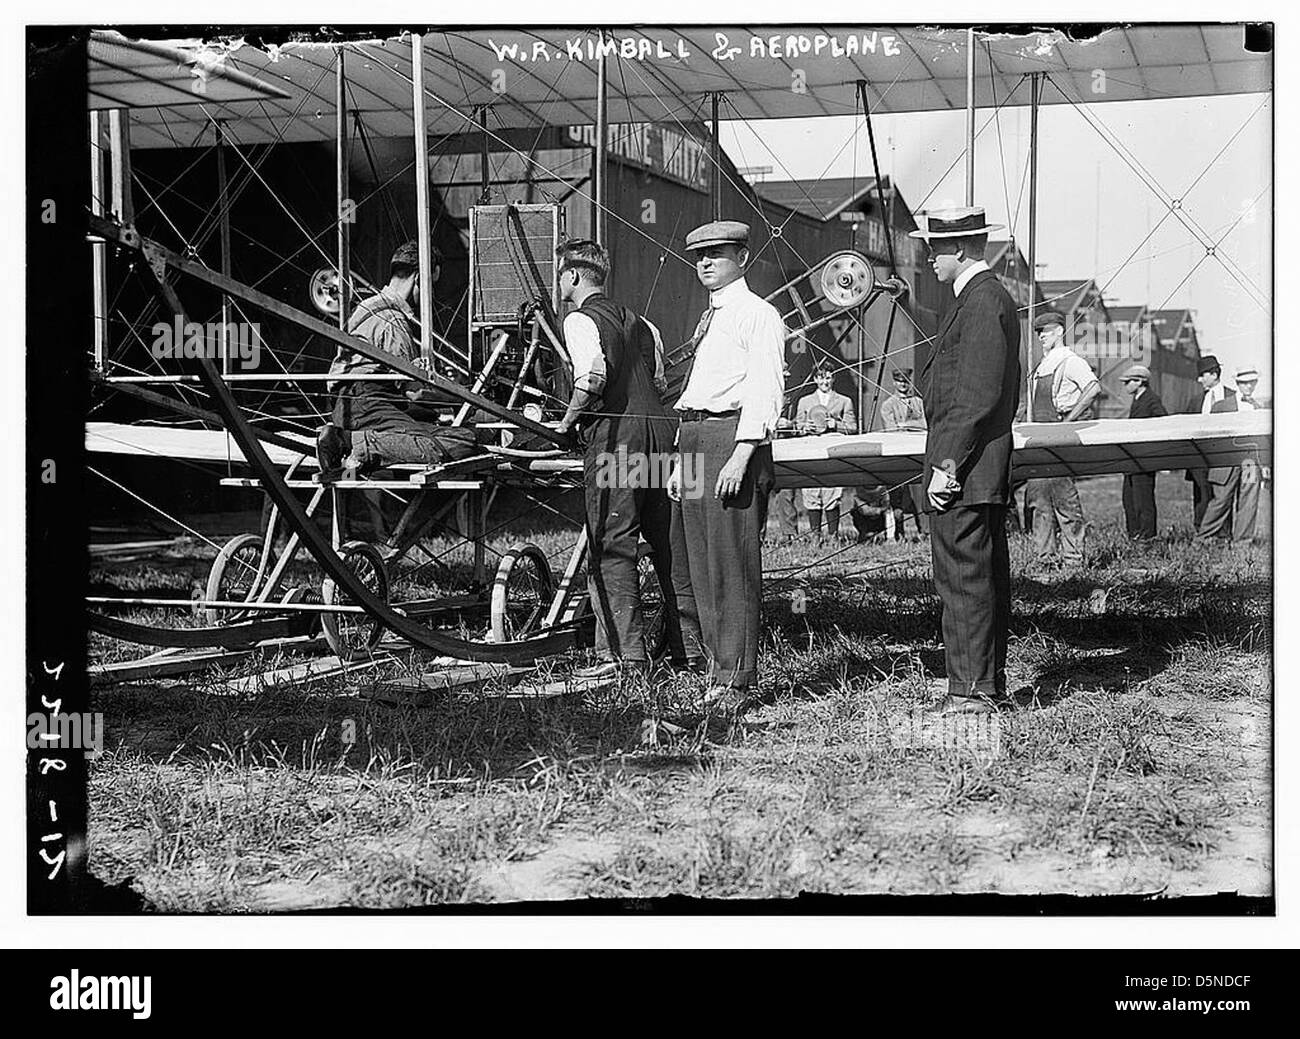 W.R. Kimball & avion (LOC) Banque D'Images